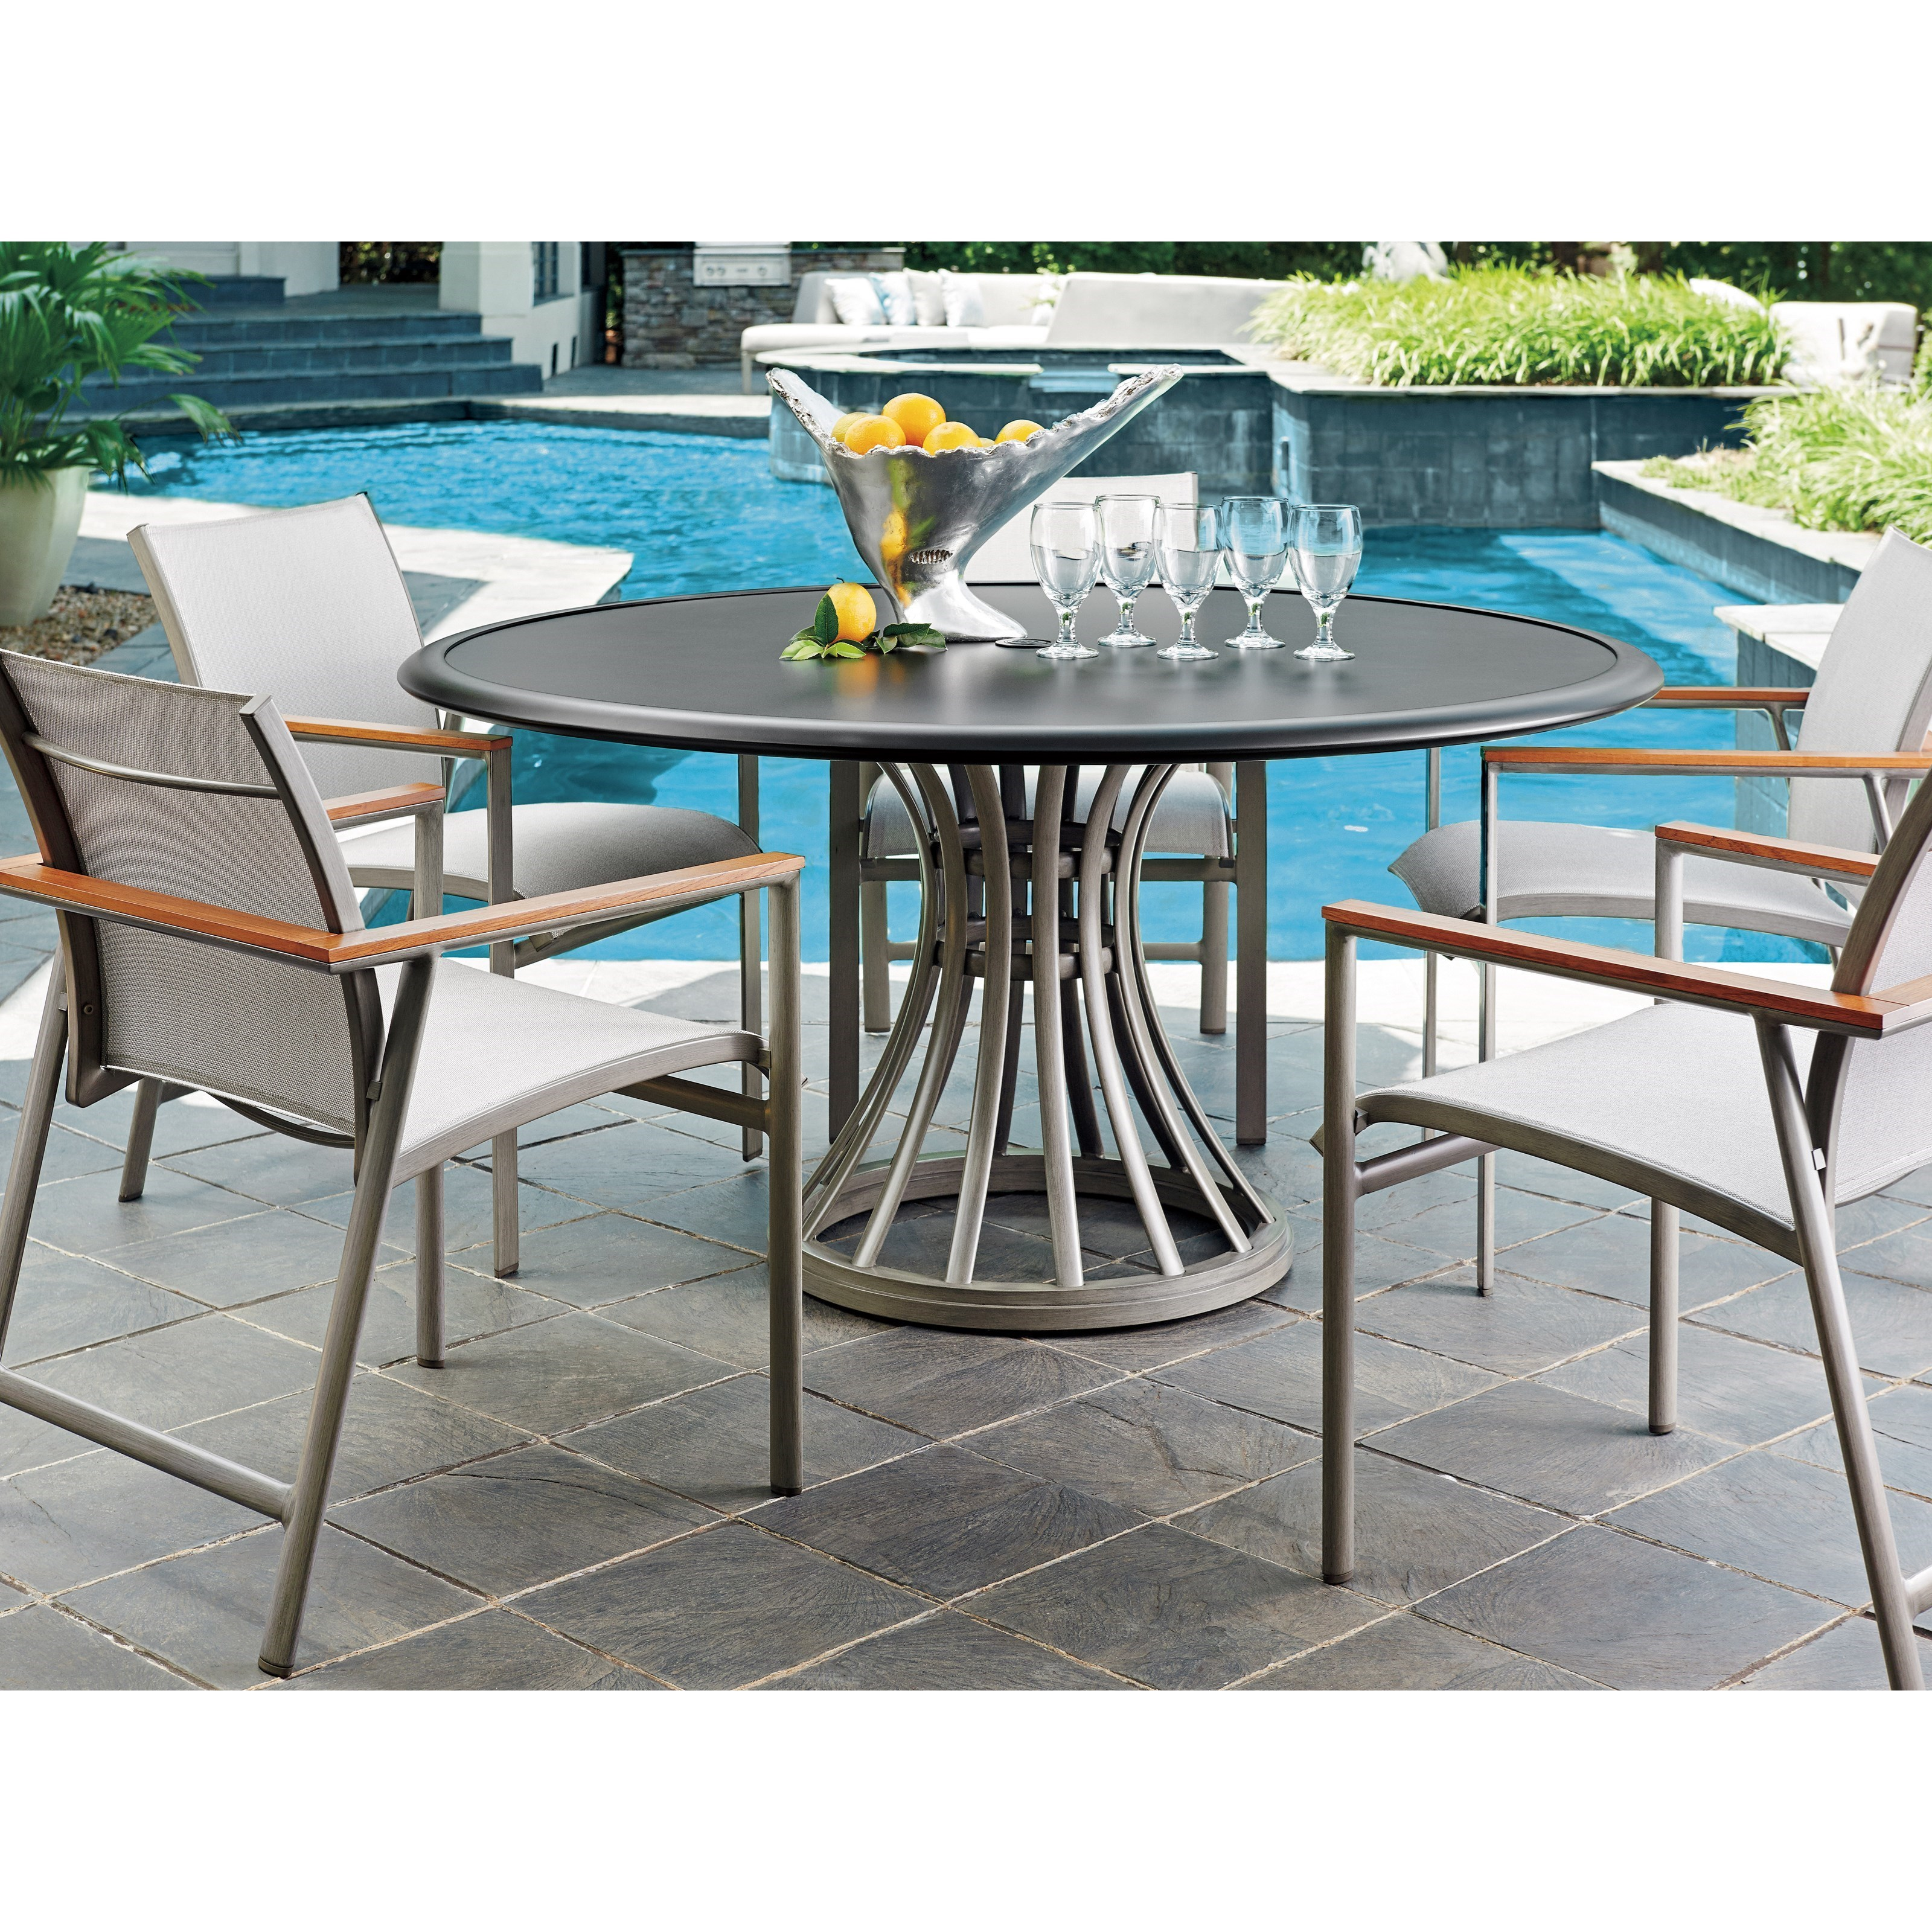 Tommy Bahama Outdoor Living Del Mar 6 Pc Dining Set Item Number 3800